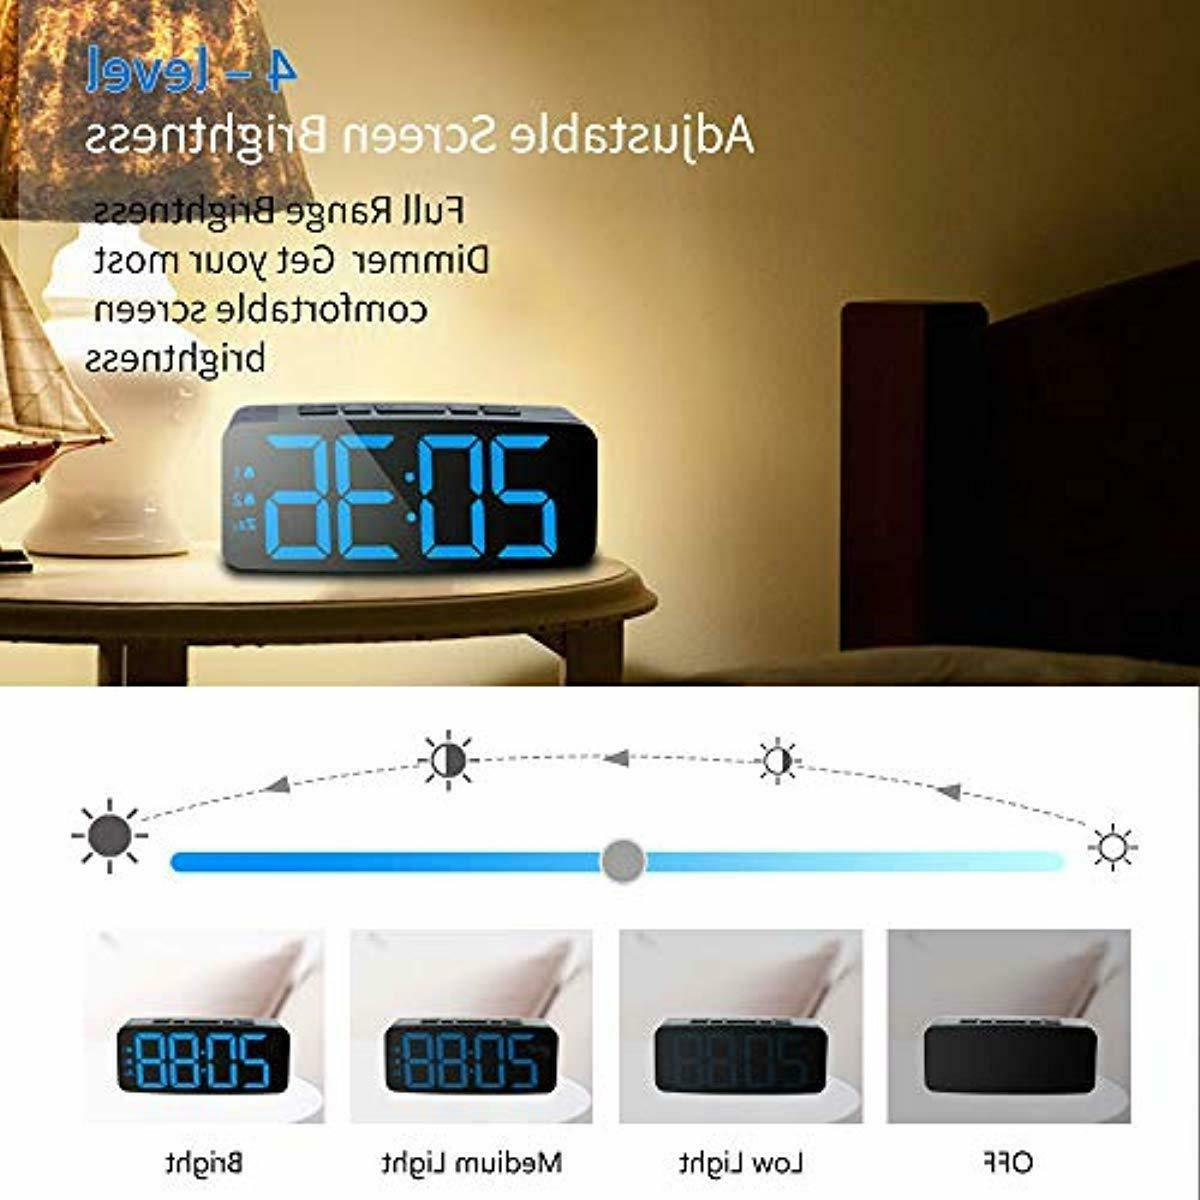 Digital Alarm Clock with USB Charger Port, Brightness